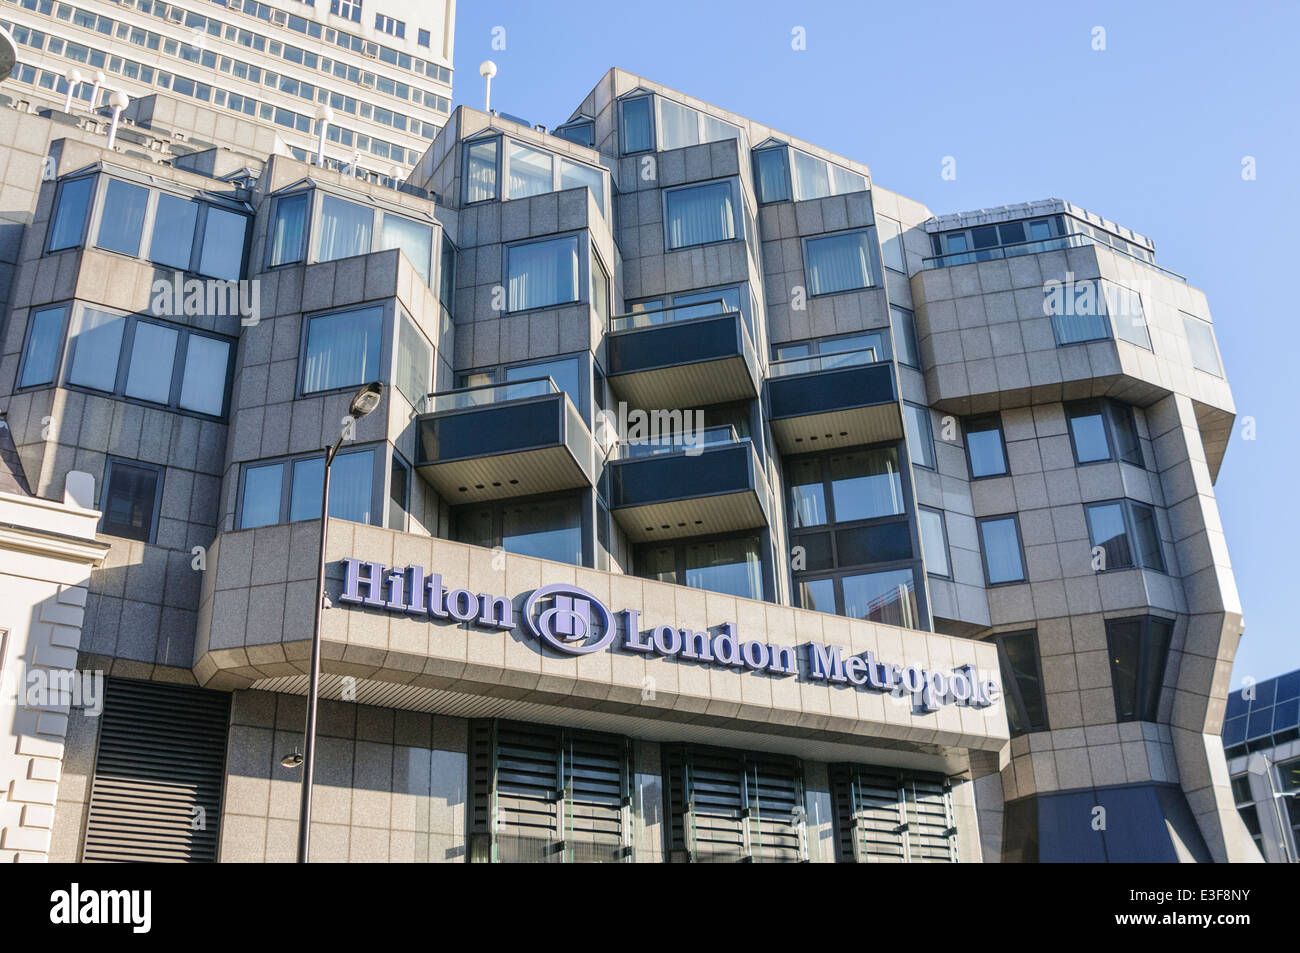 Hilton London Metropole Hotel Stockbild